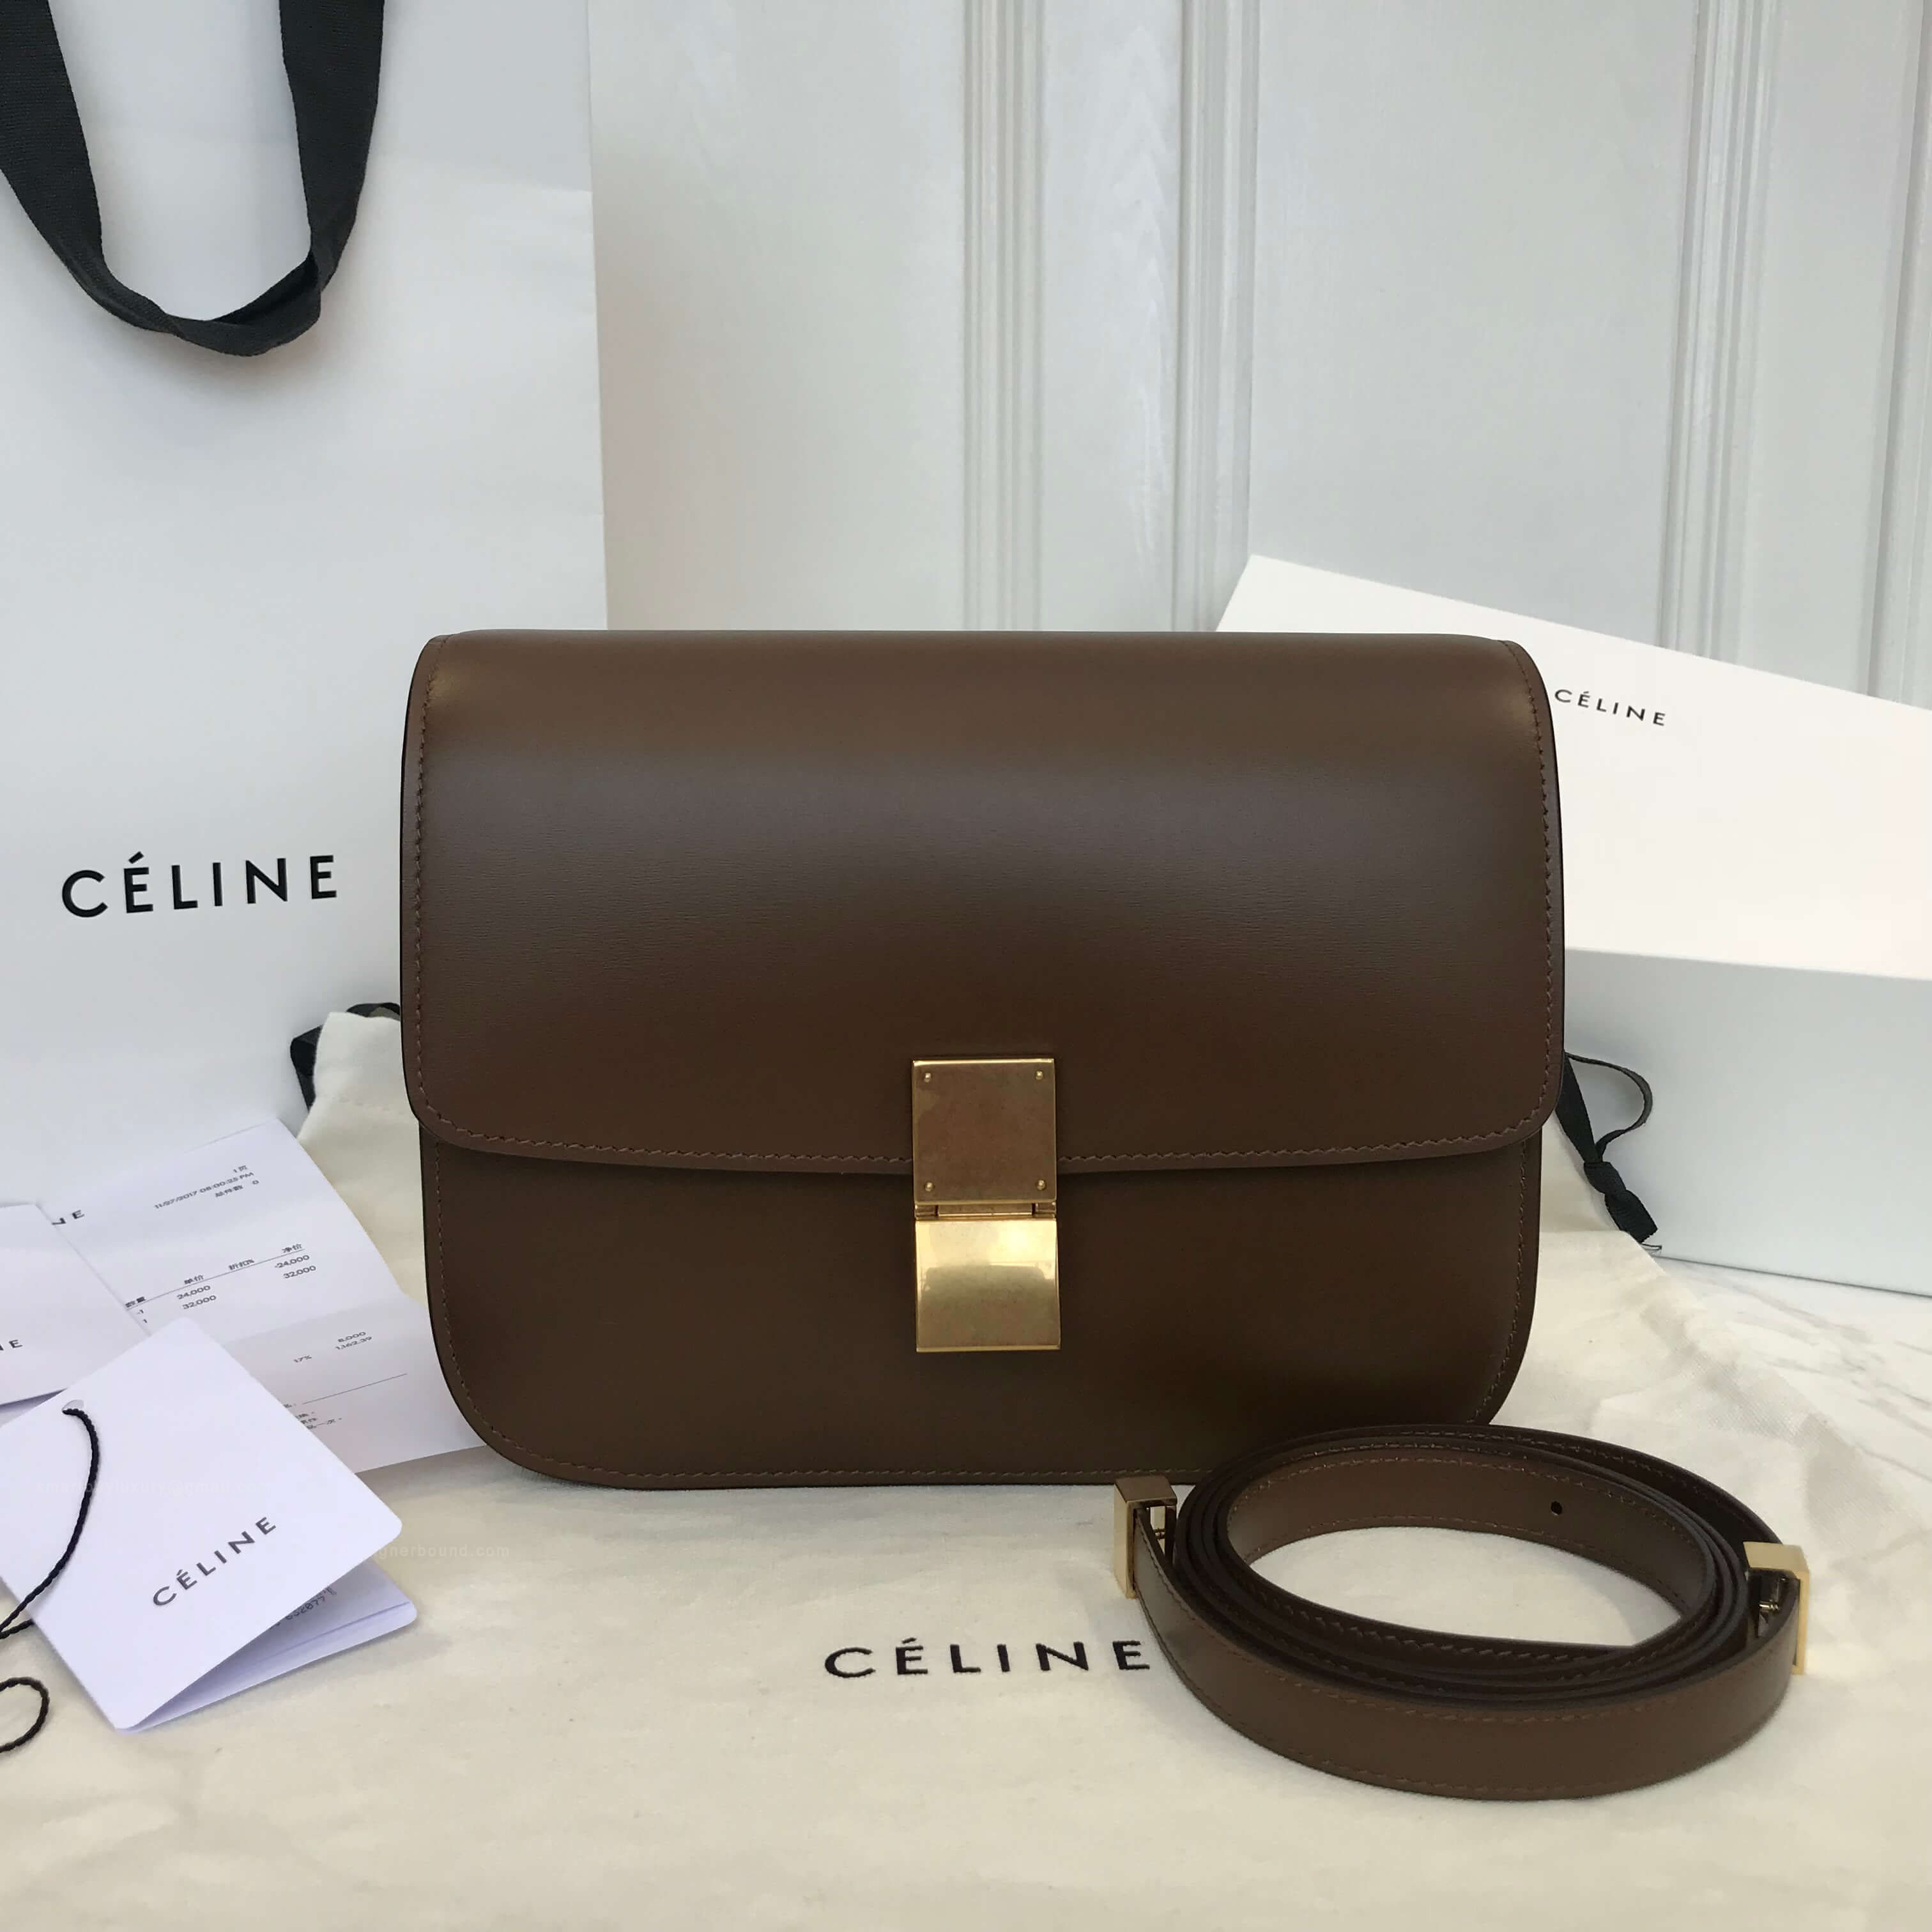 Celine Classic Box Bag Medium in Khaki Liege Calfskin